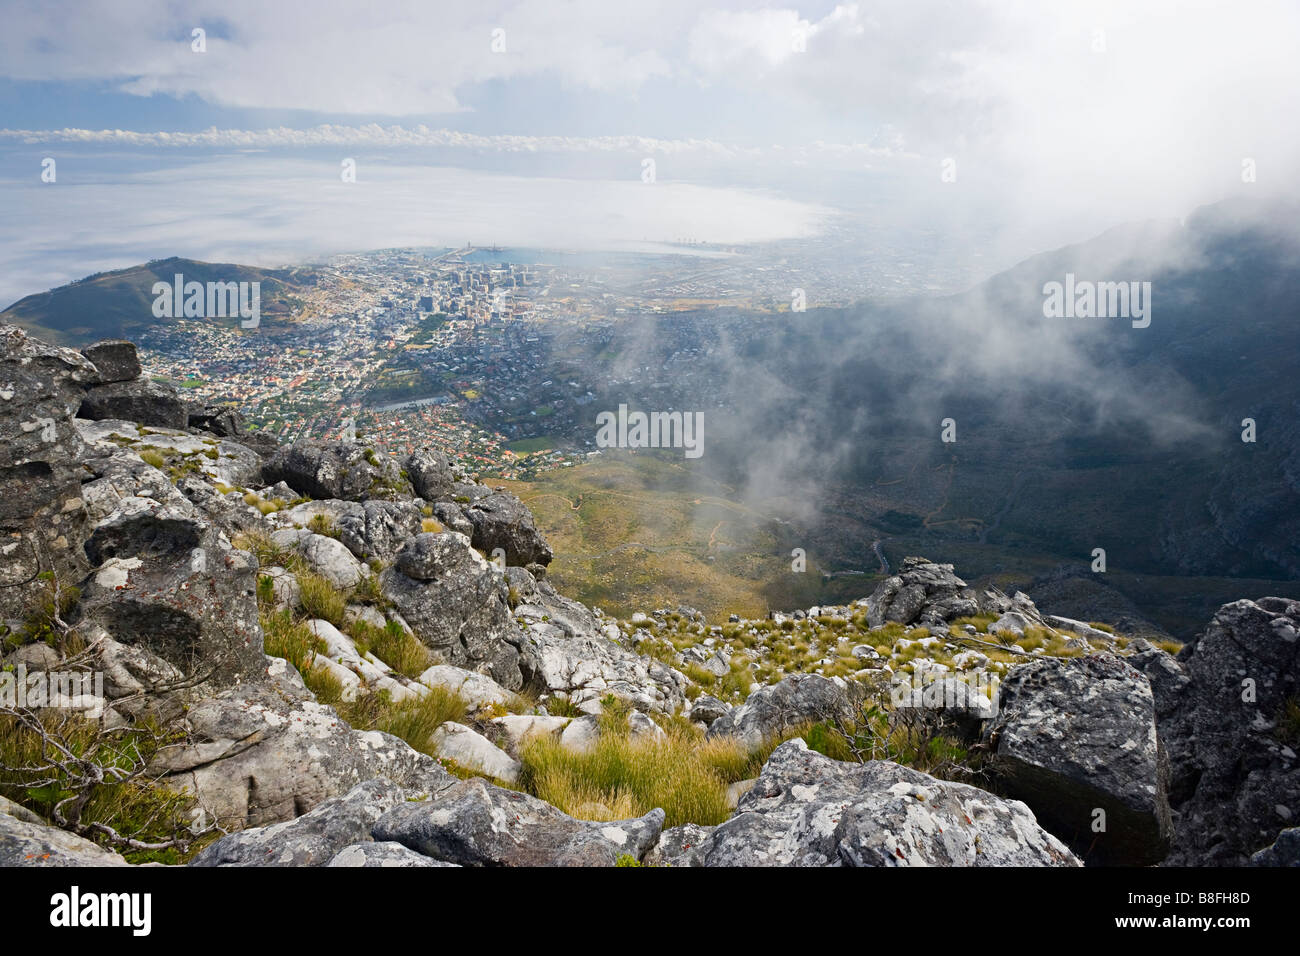 A view looking down onto Cape Town, South Africa from Table Mountain. - Stock Image